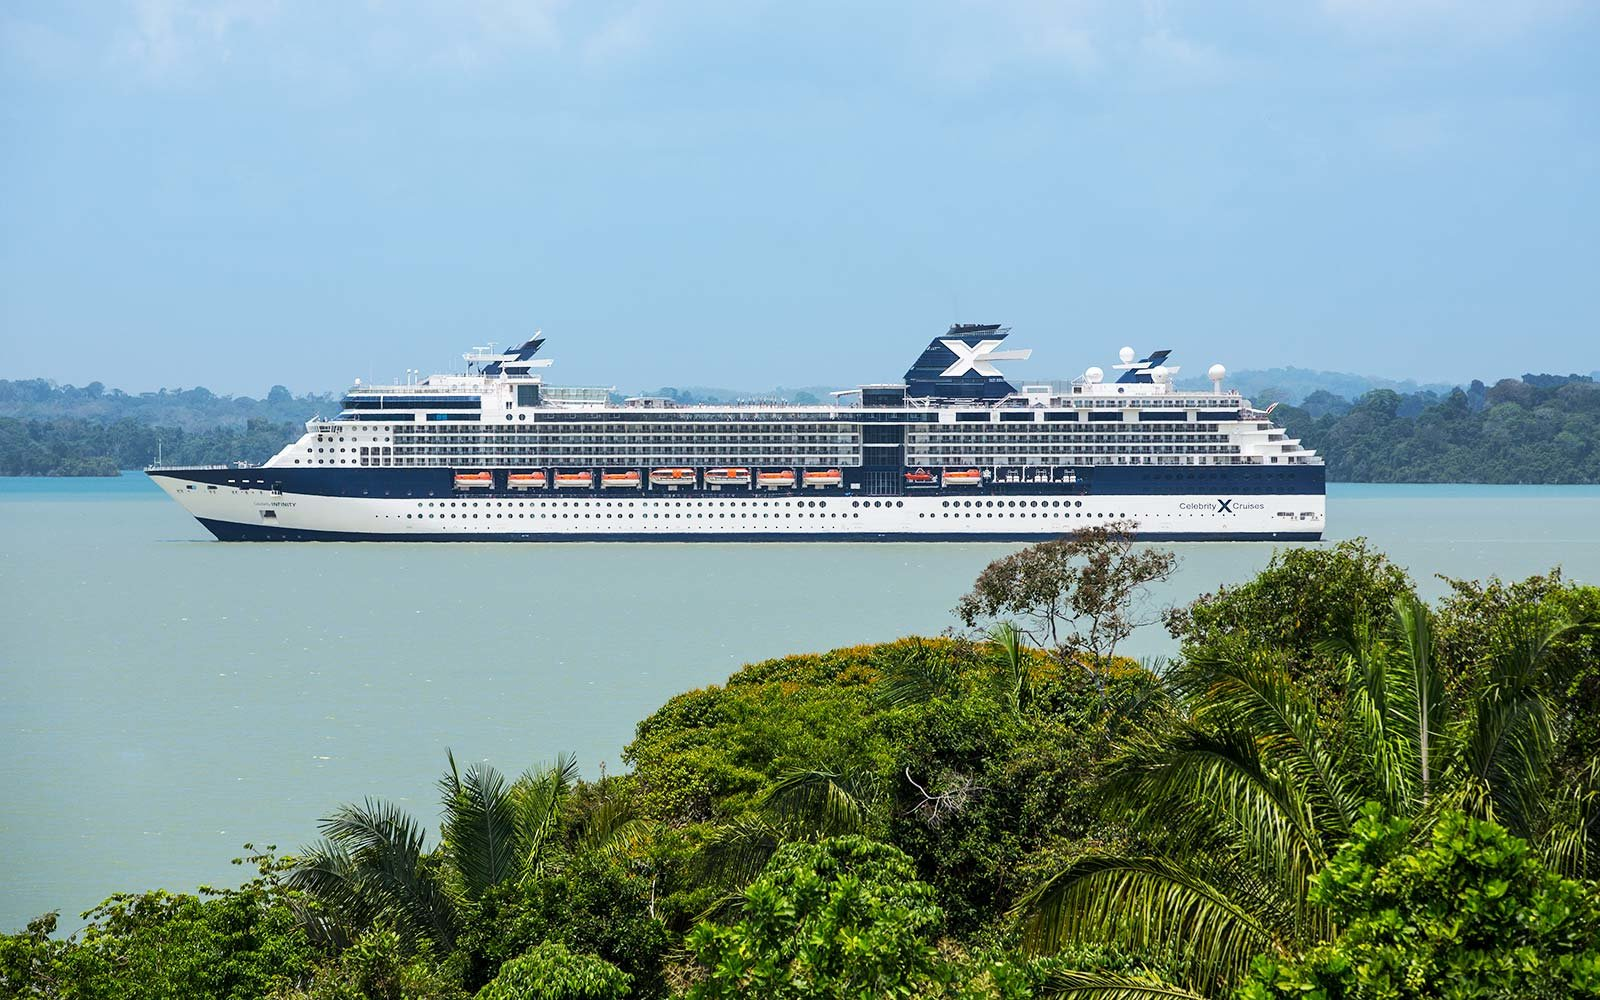 The Worlds Best Largeship Ocean Cruise Lines In Travel - Top 10 biggest cruise ships